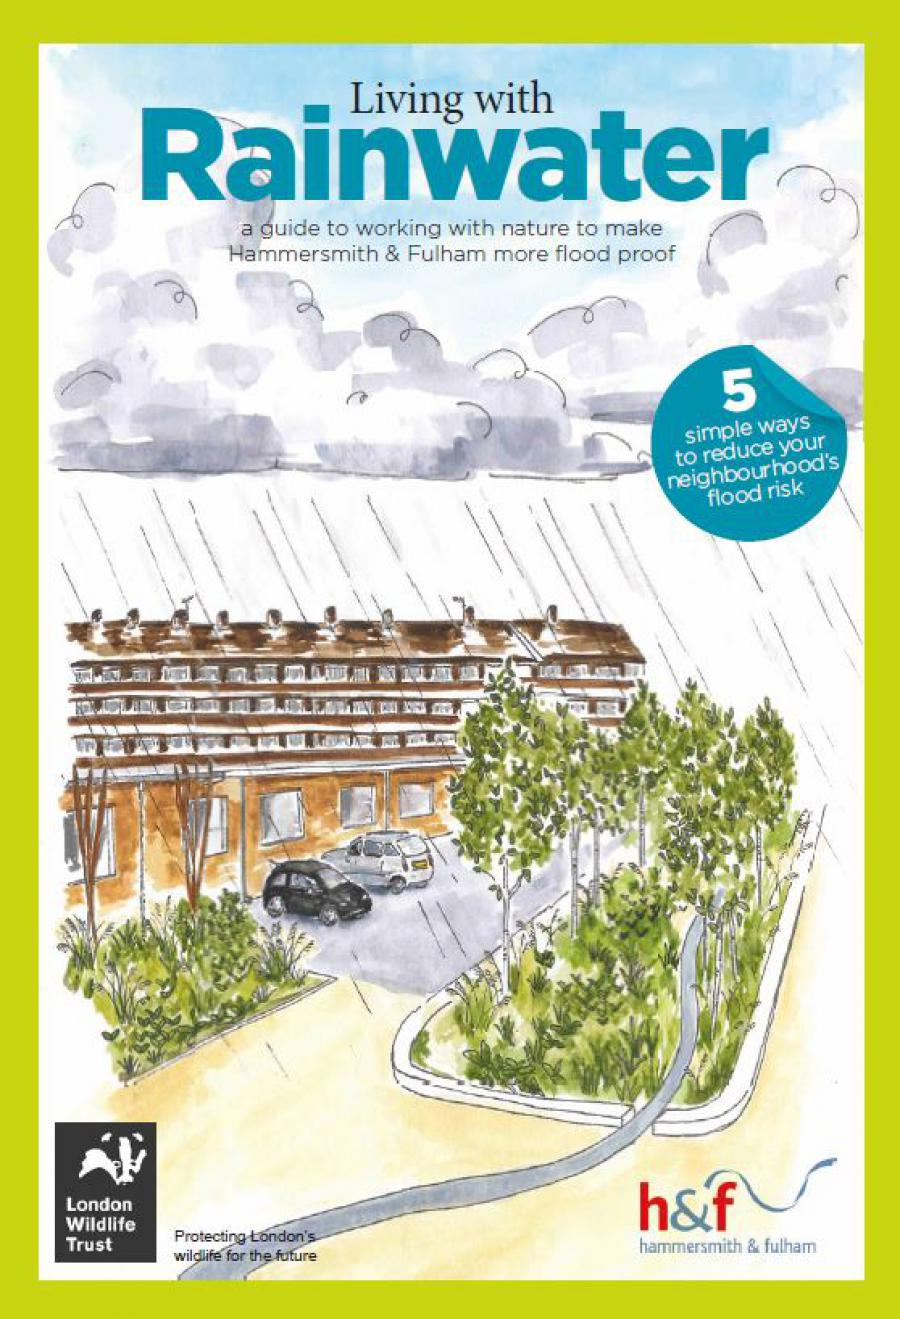 Living with rainwater - a guide to working with nature to make Hammersmith & Fulham more flood proof